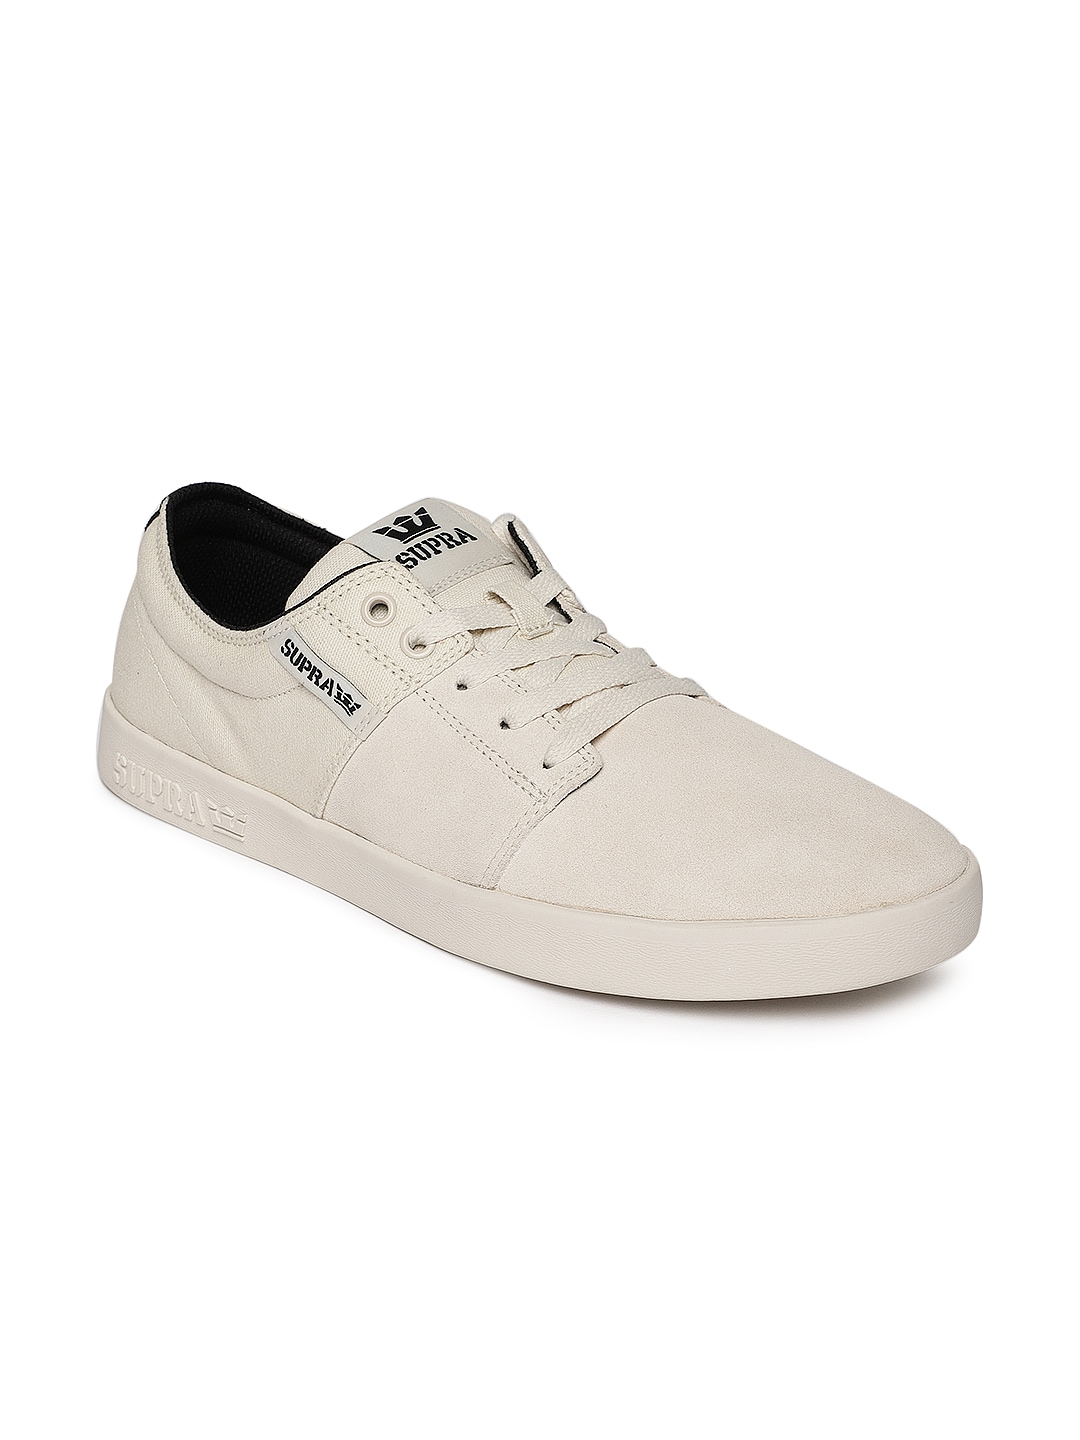 0d3ef58e1a8 Supra White Footwear - Buy Supra White Footwear online in India